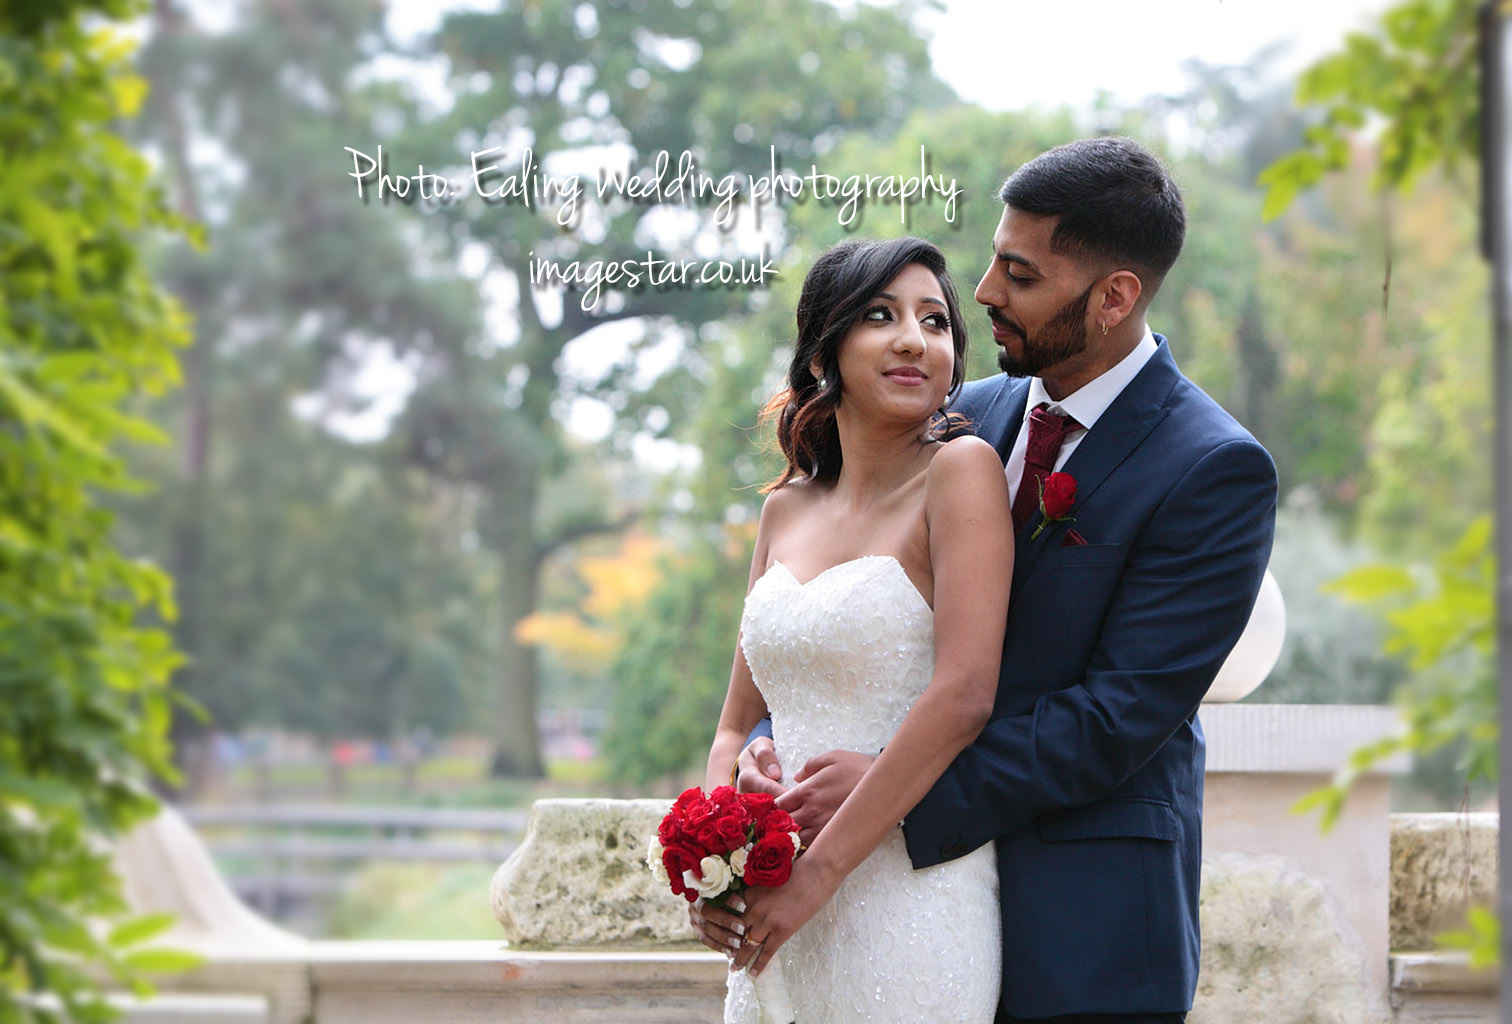 Ealings Greenford Northolt wedding photographer